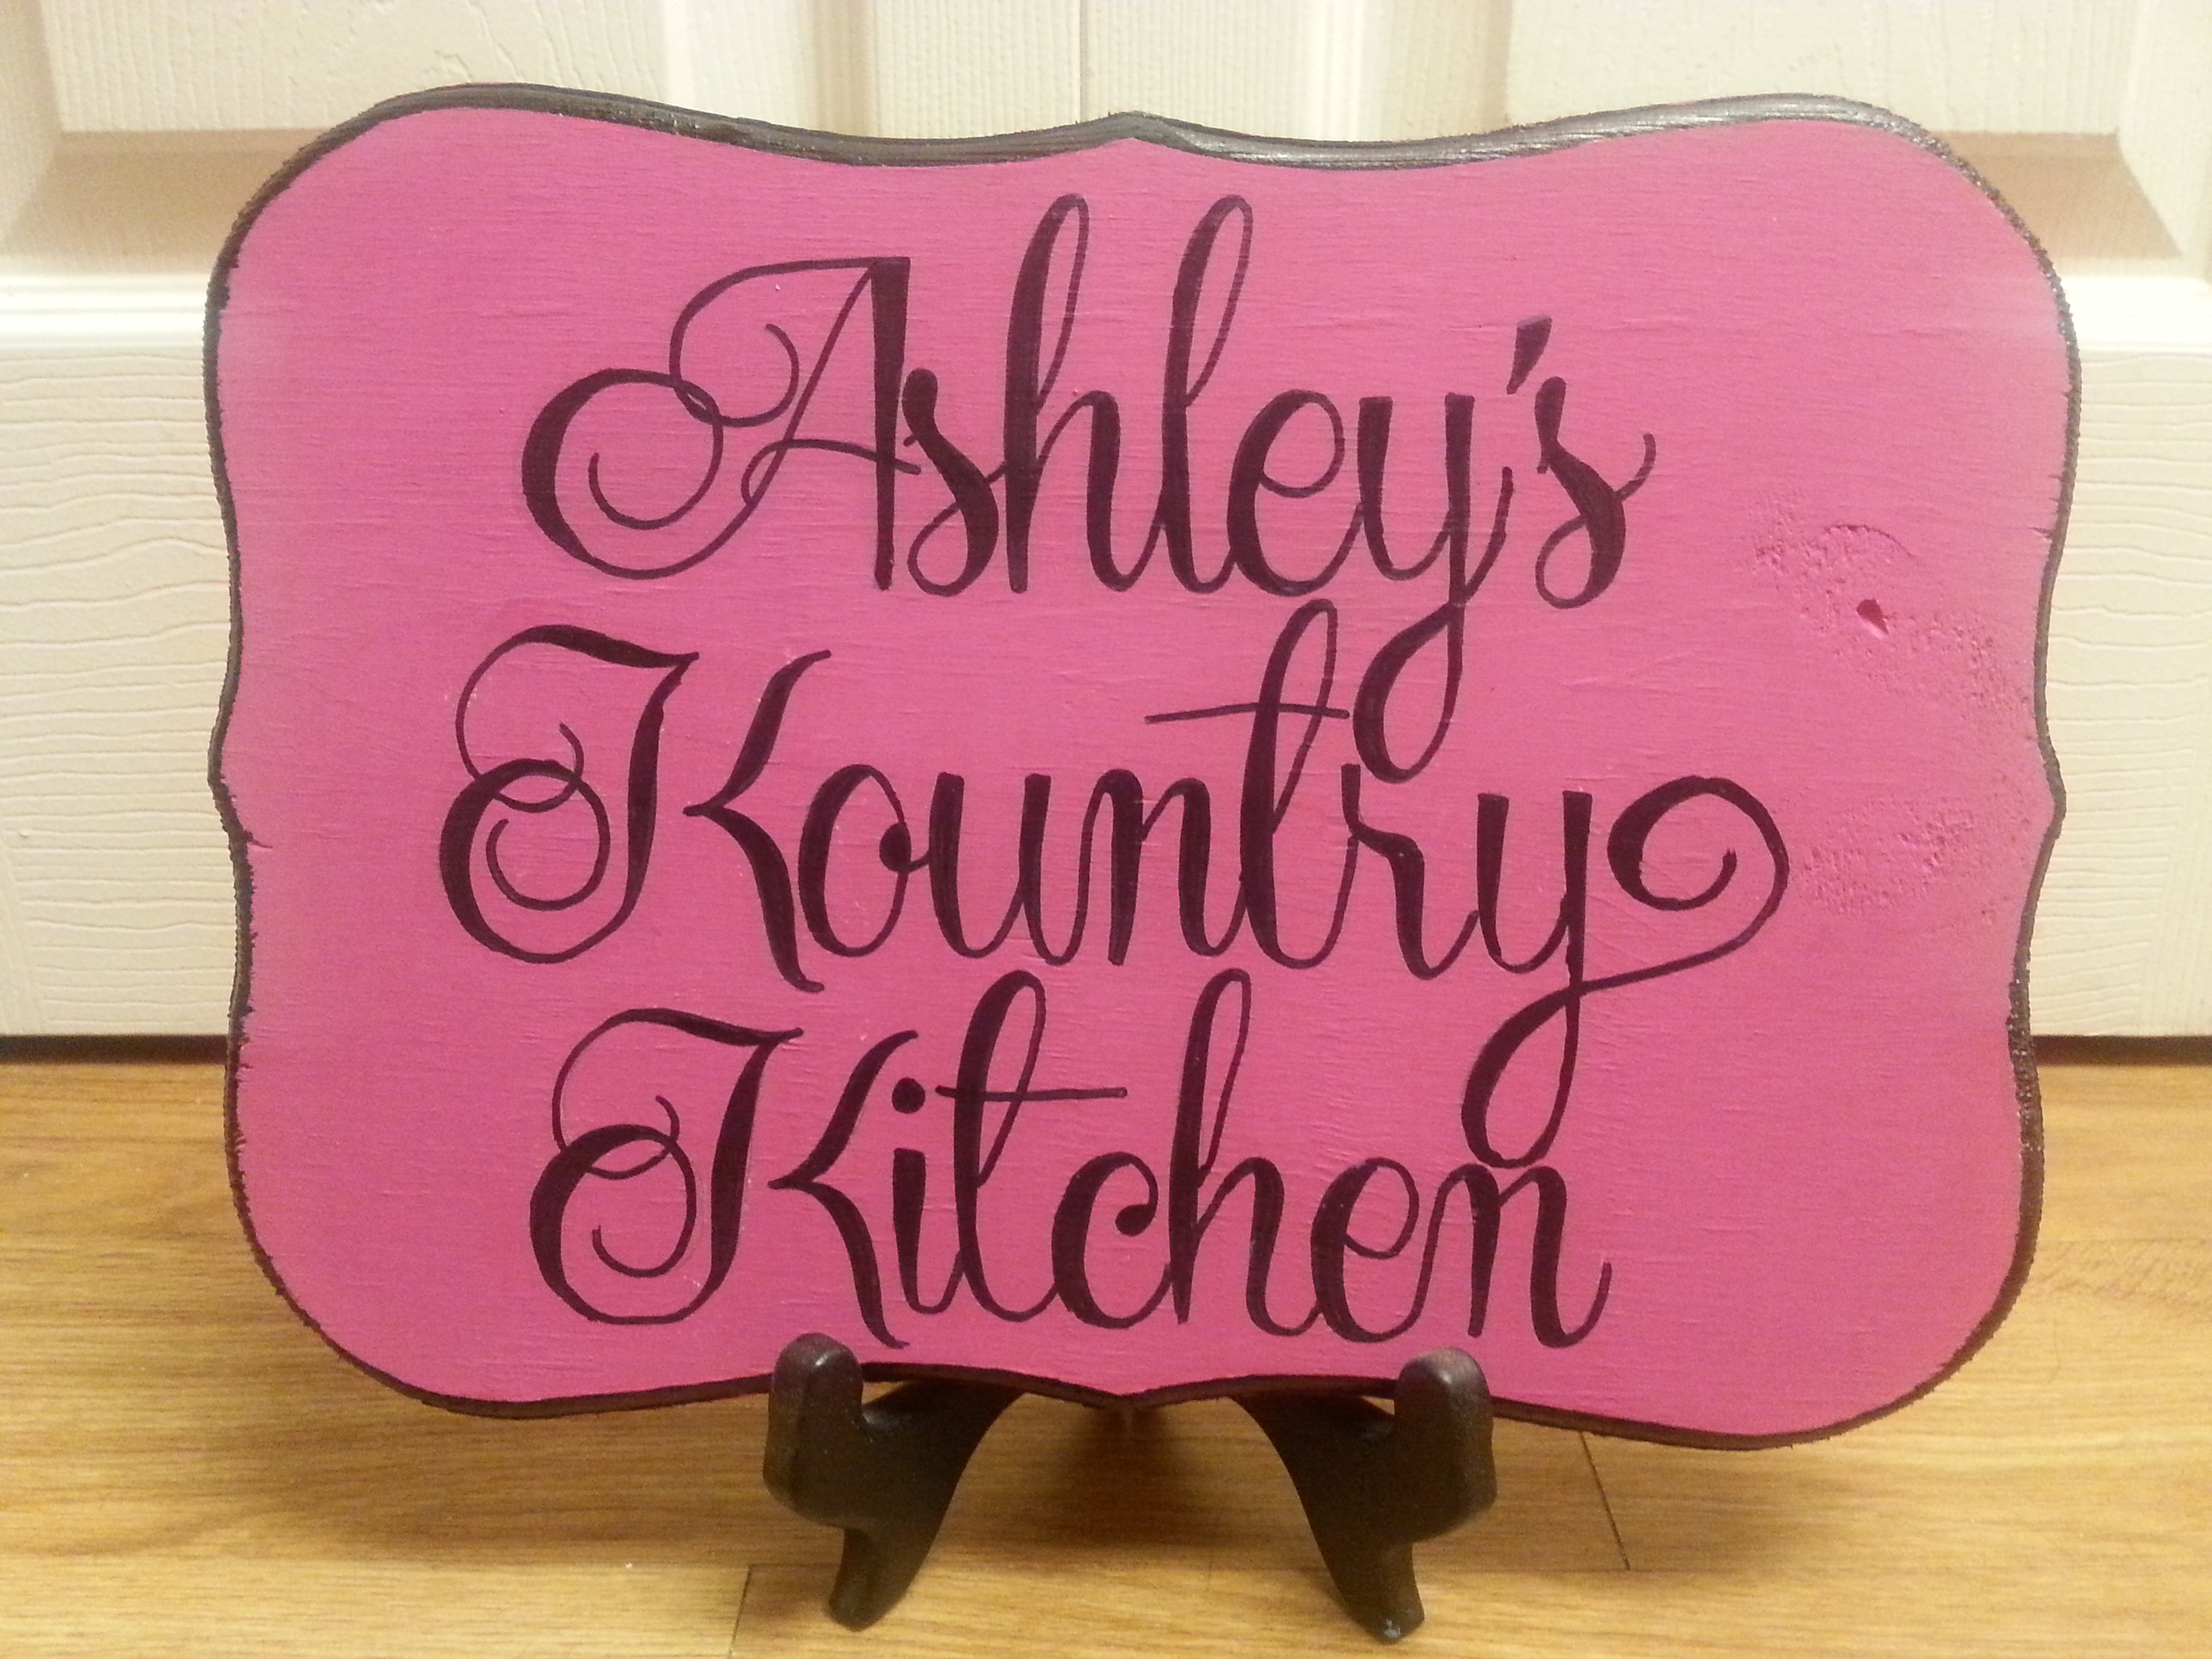 Ashley's Kountry Kitchen plaqu